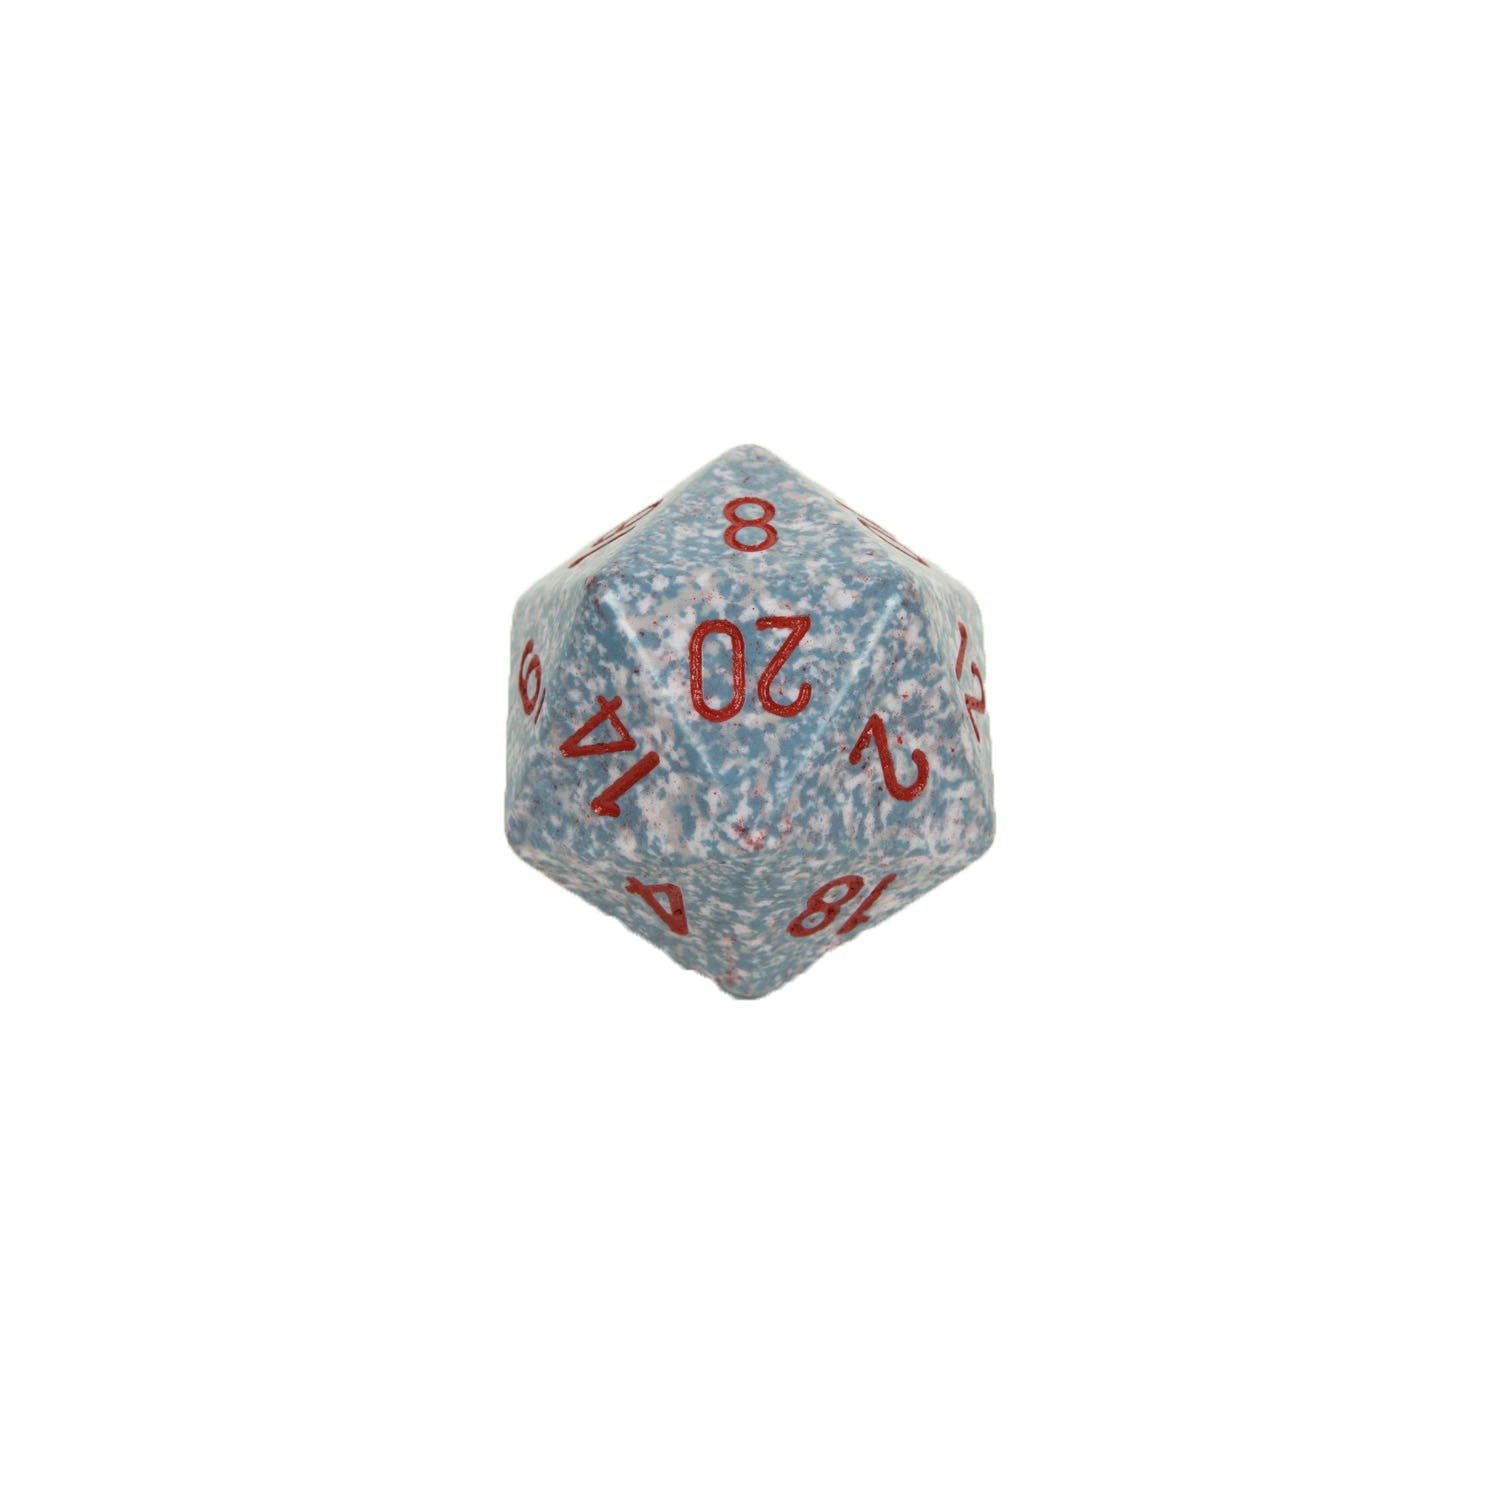 Chessex CHXXS2020 Air™ Speckled 34mm d20 single